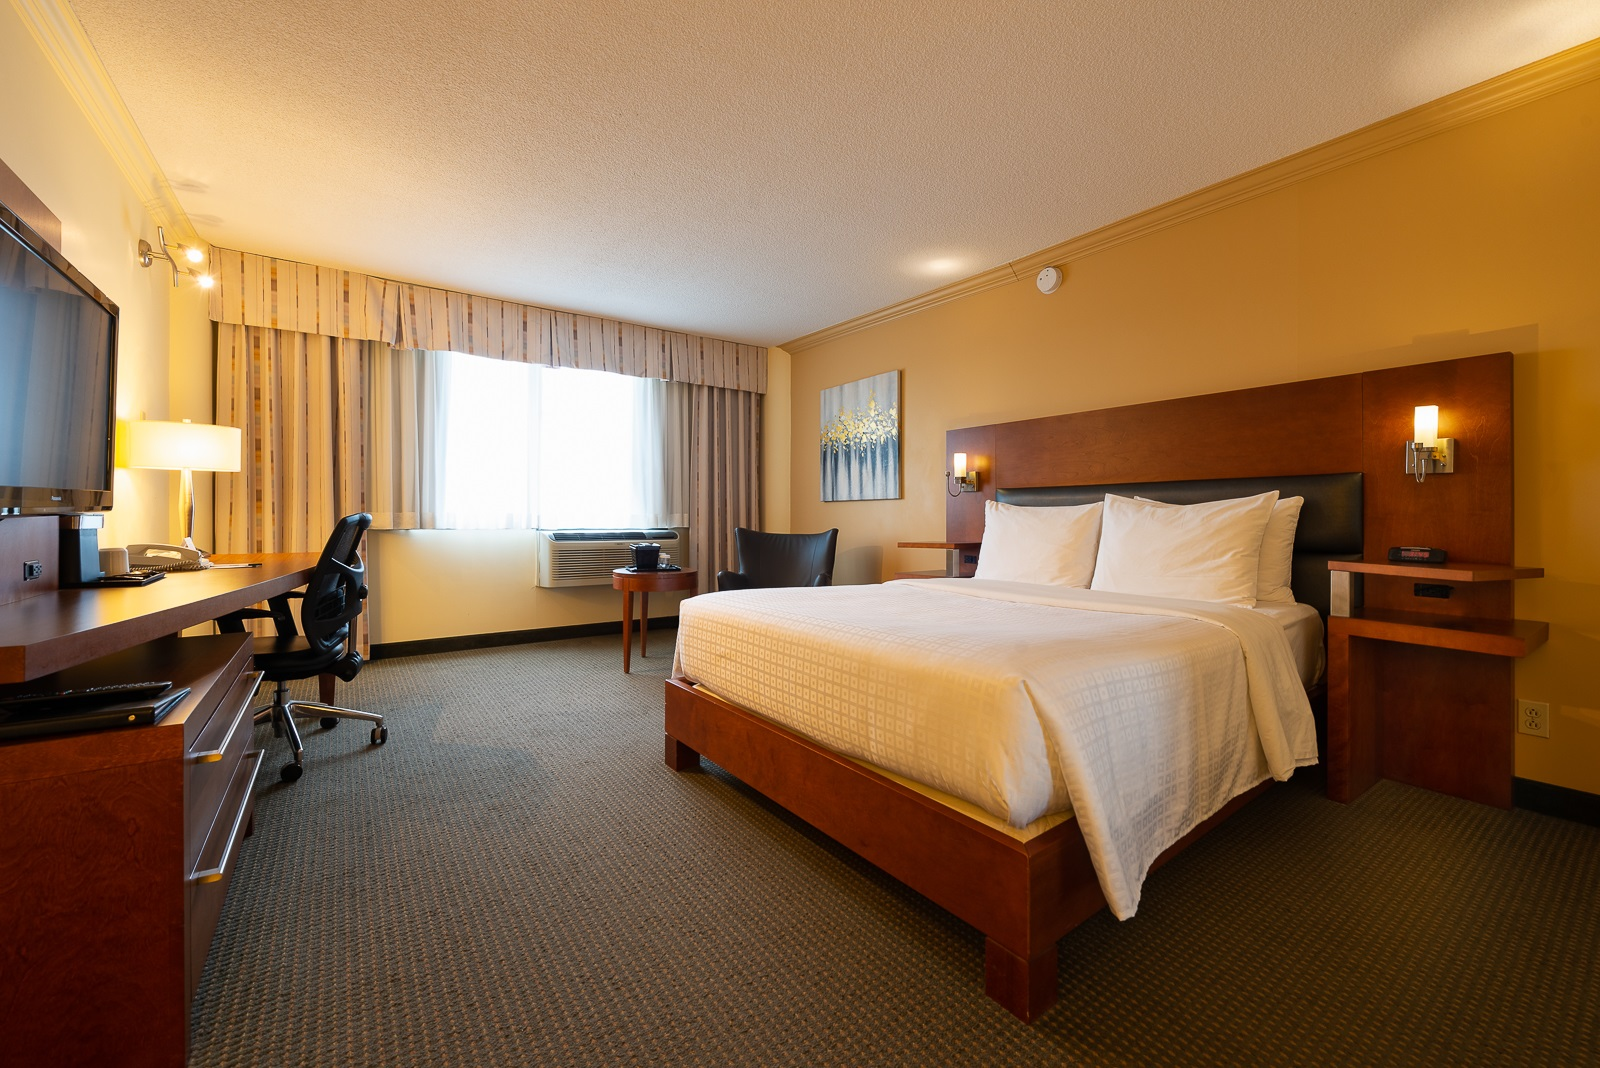 Business Rooms: 1 Queen bed or 1 King bed or 2 Queen beds